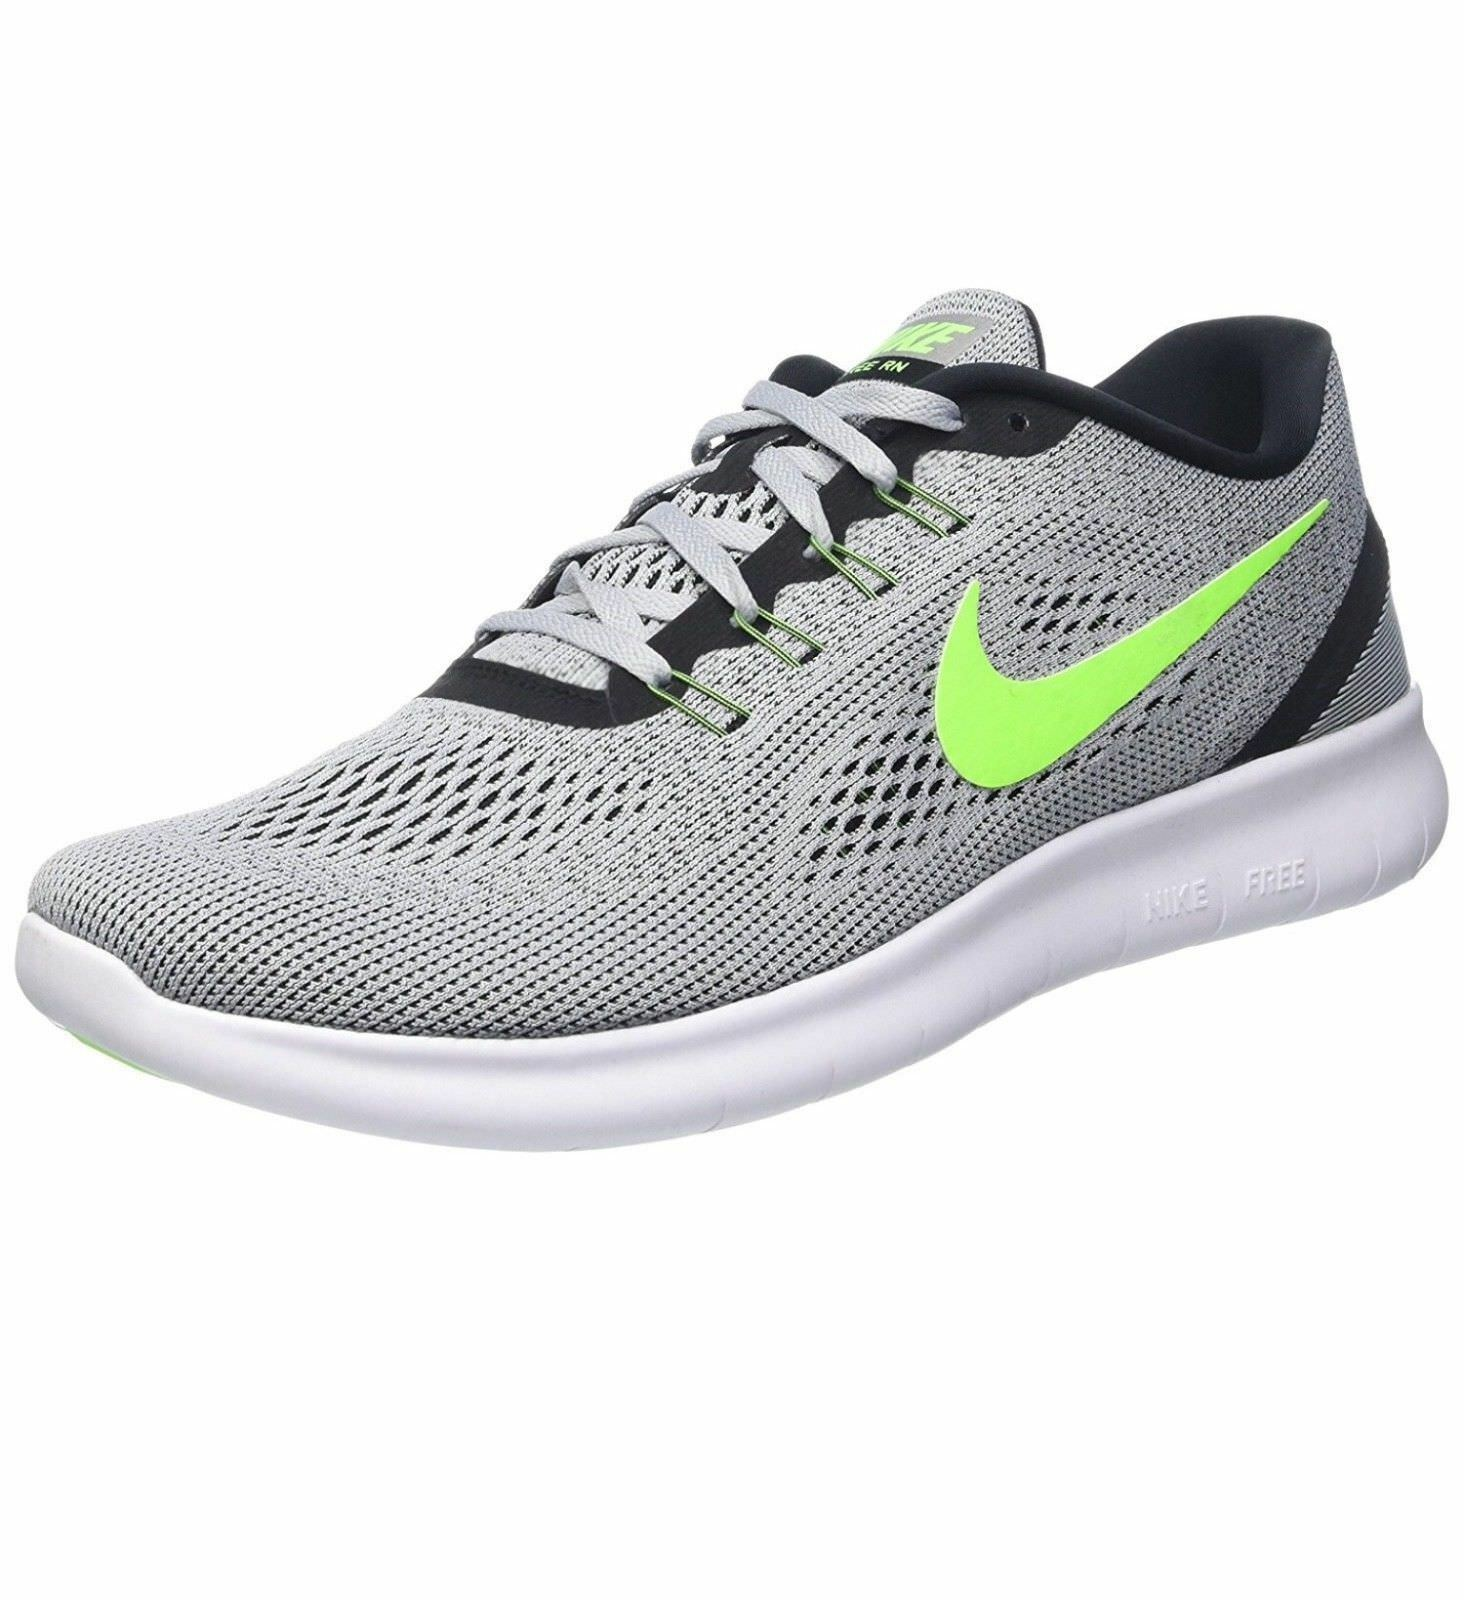 NIKE Men's Free RN Running Shoe 831508 003 NEW Multiple Sizes